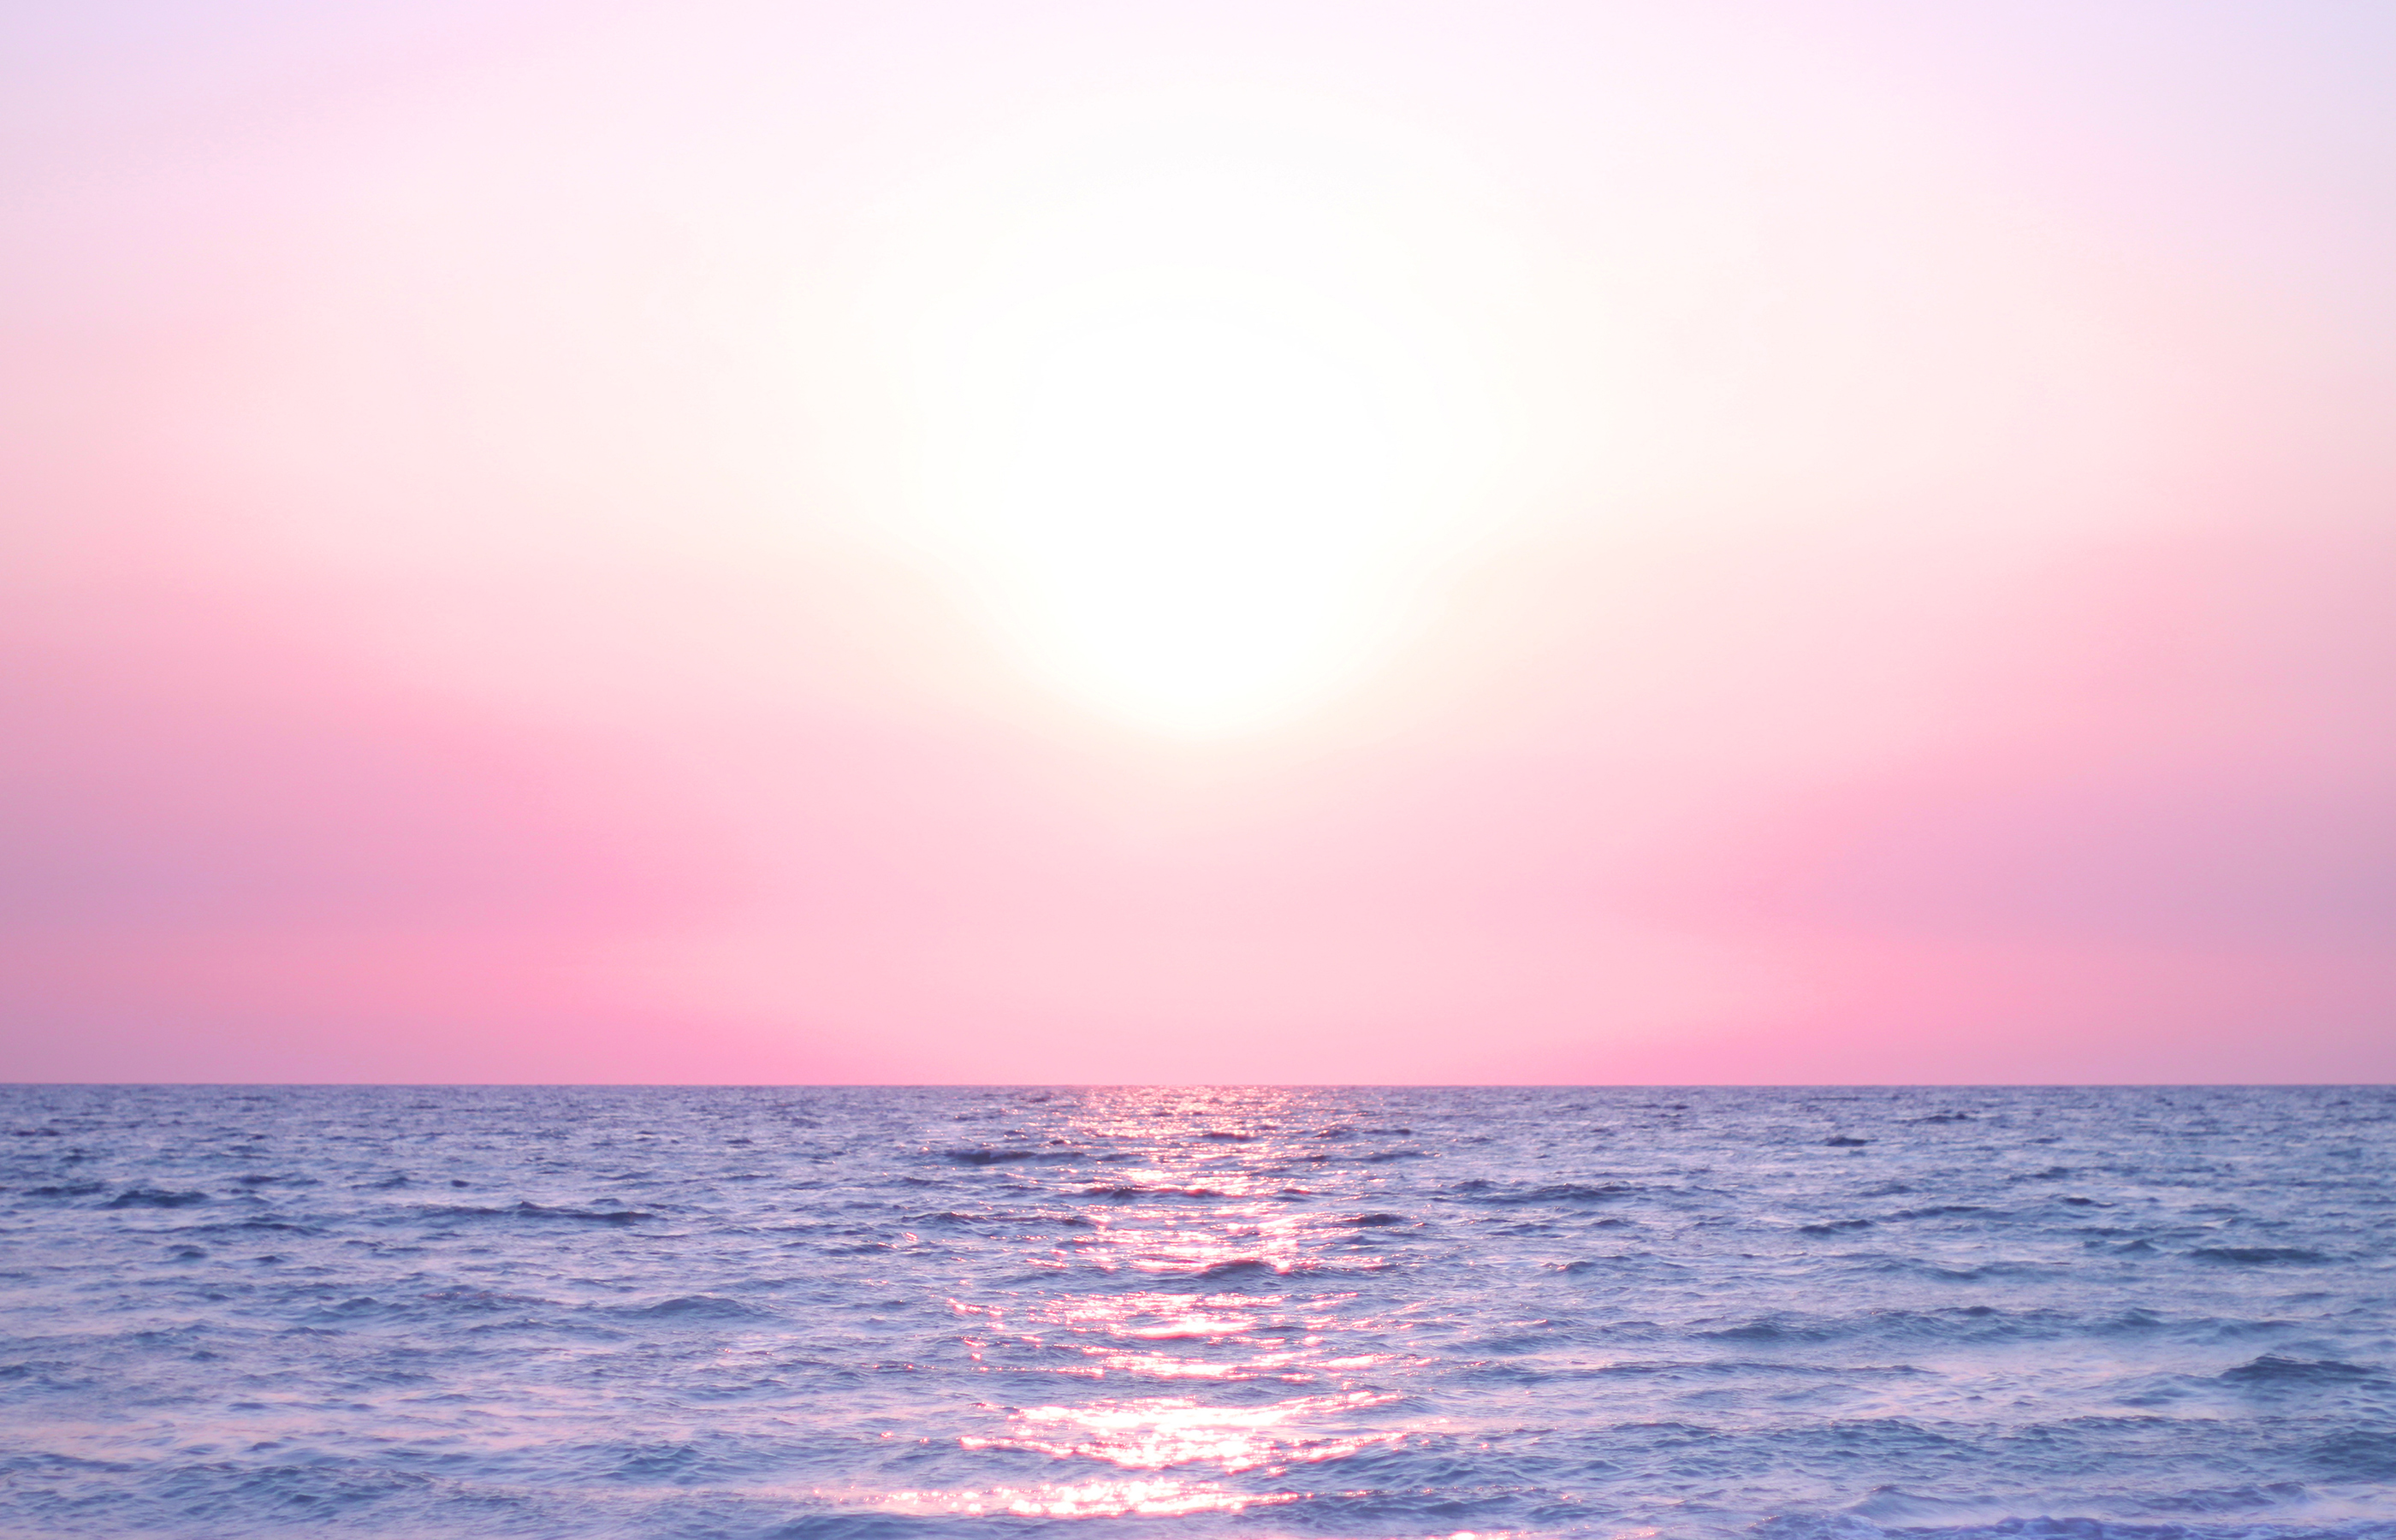 Beach Sunrise 4k Hd Desktop Wallpaper For 4k Ultra Hd Tv: Pink Sunrise - HD Desktop Wallpapers